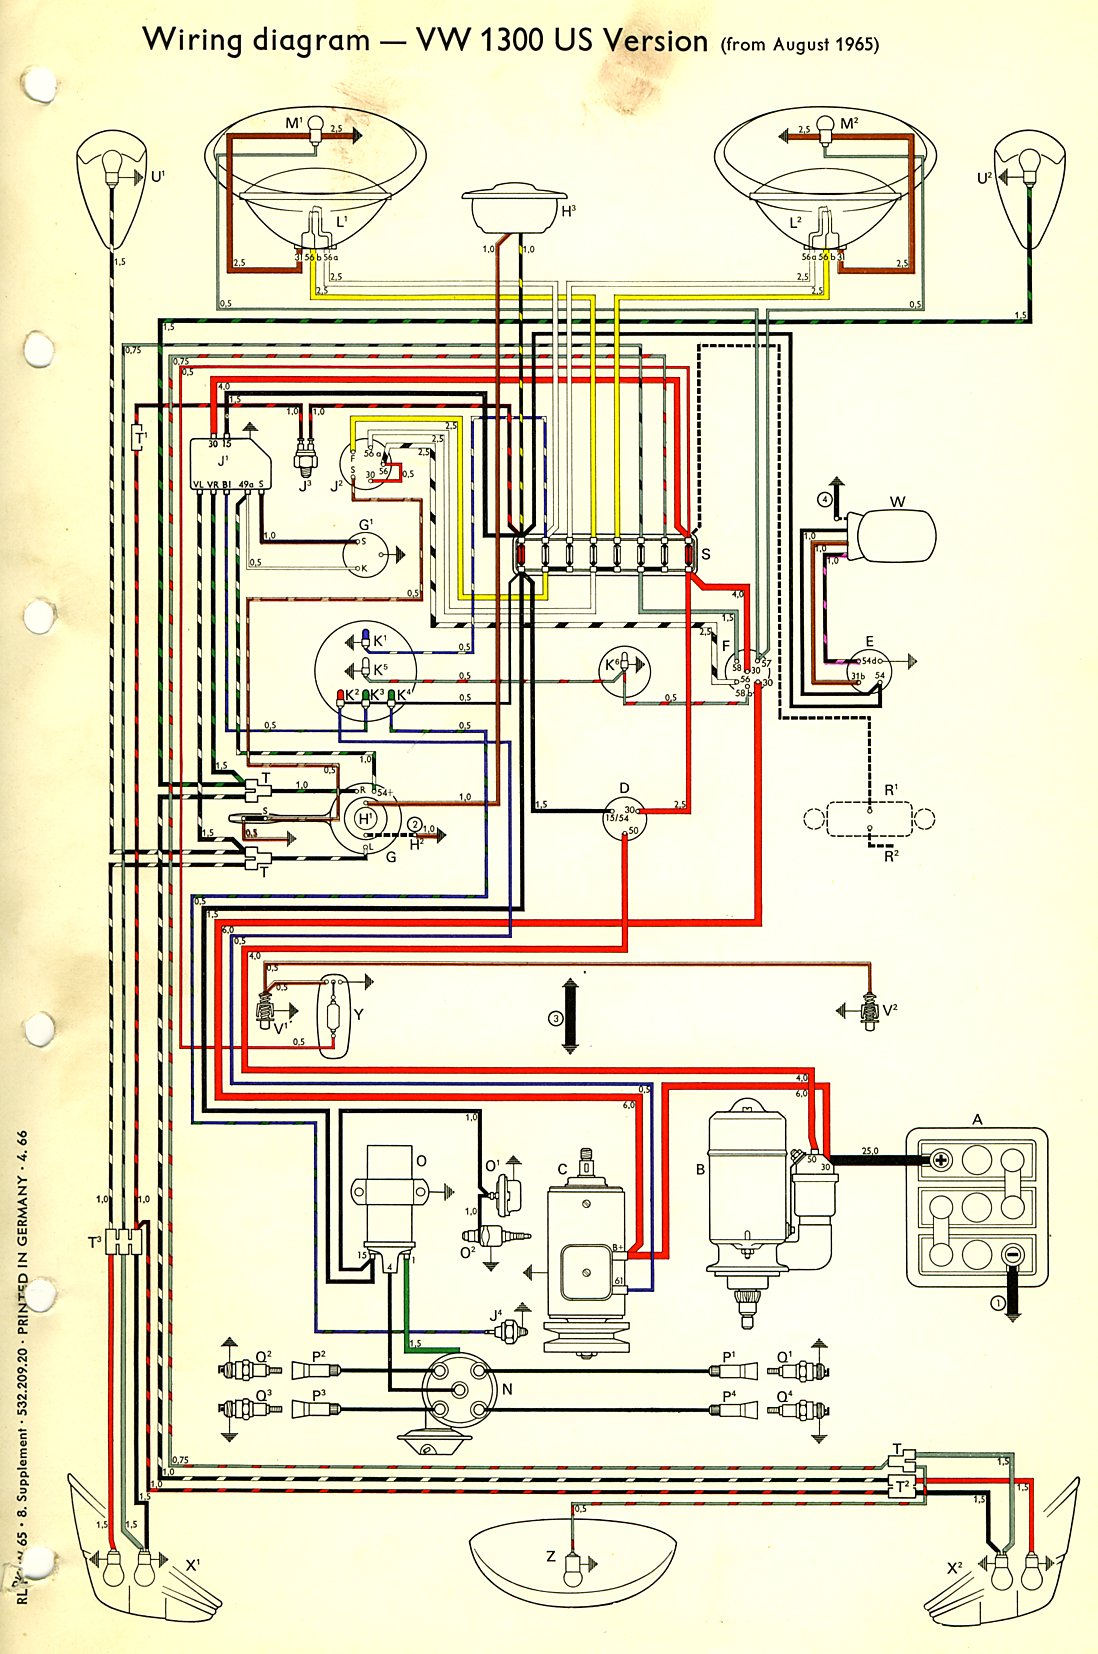 bug_66_USA thesamba com type 1 wiring diagrams 69 vw wiring diagram at bayanpartner.co